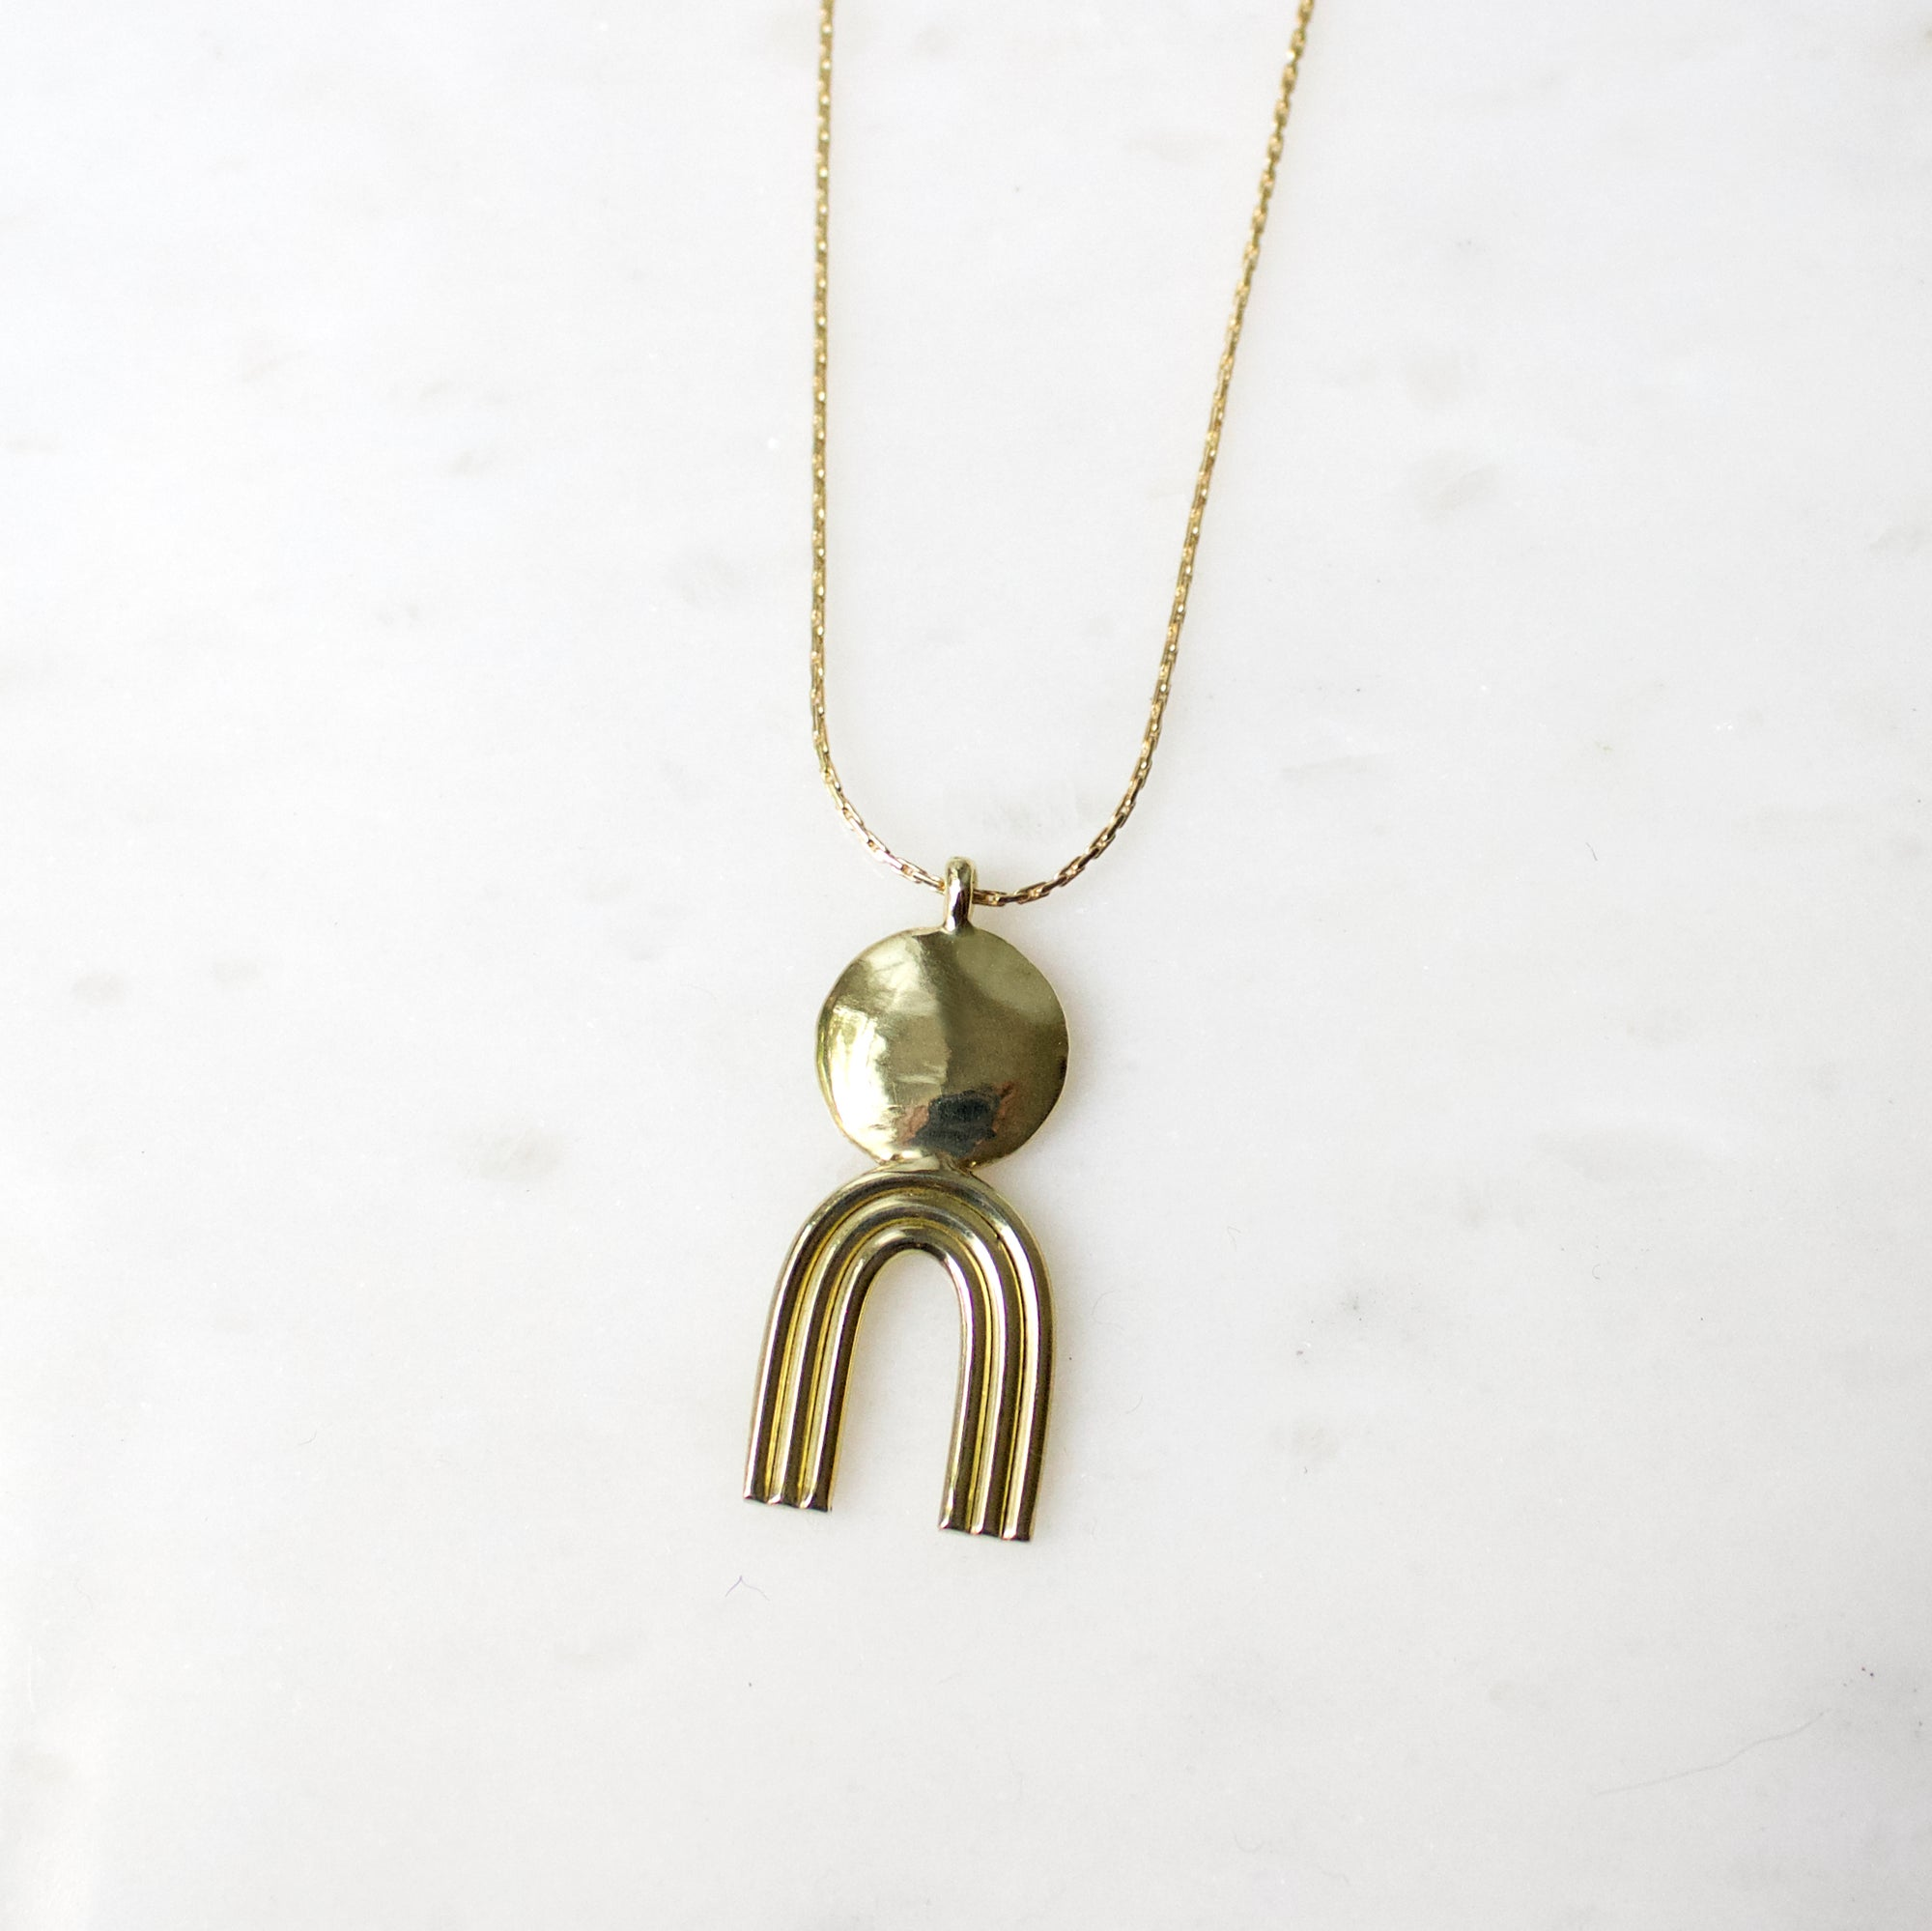 buy black tribes pendant india necklace thread brass product with